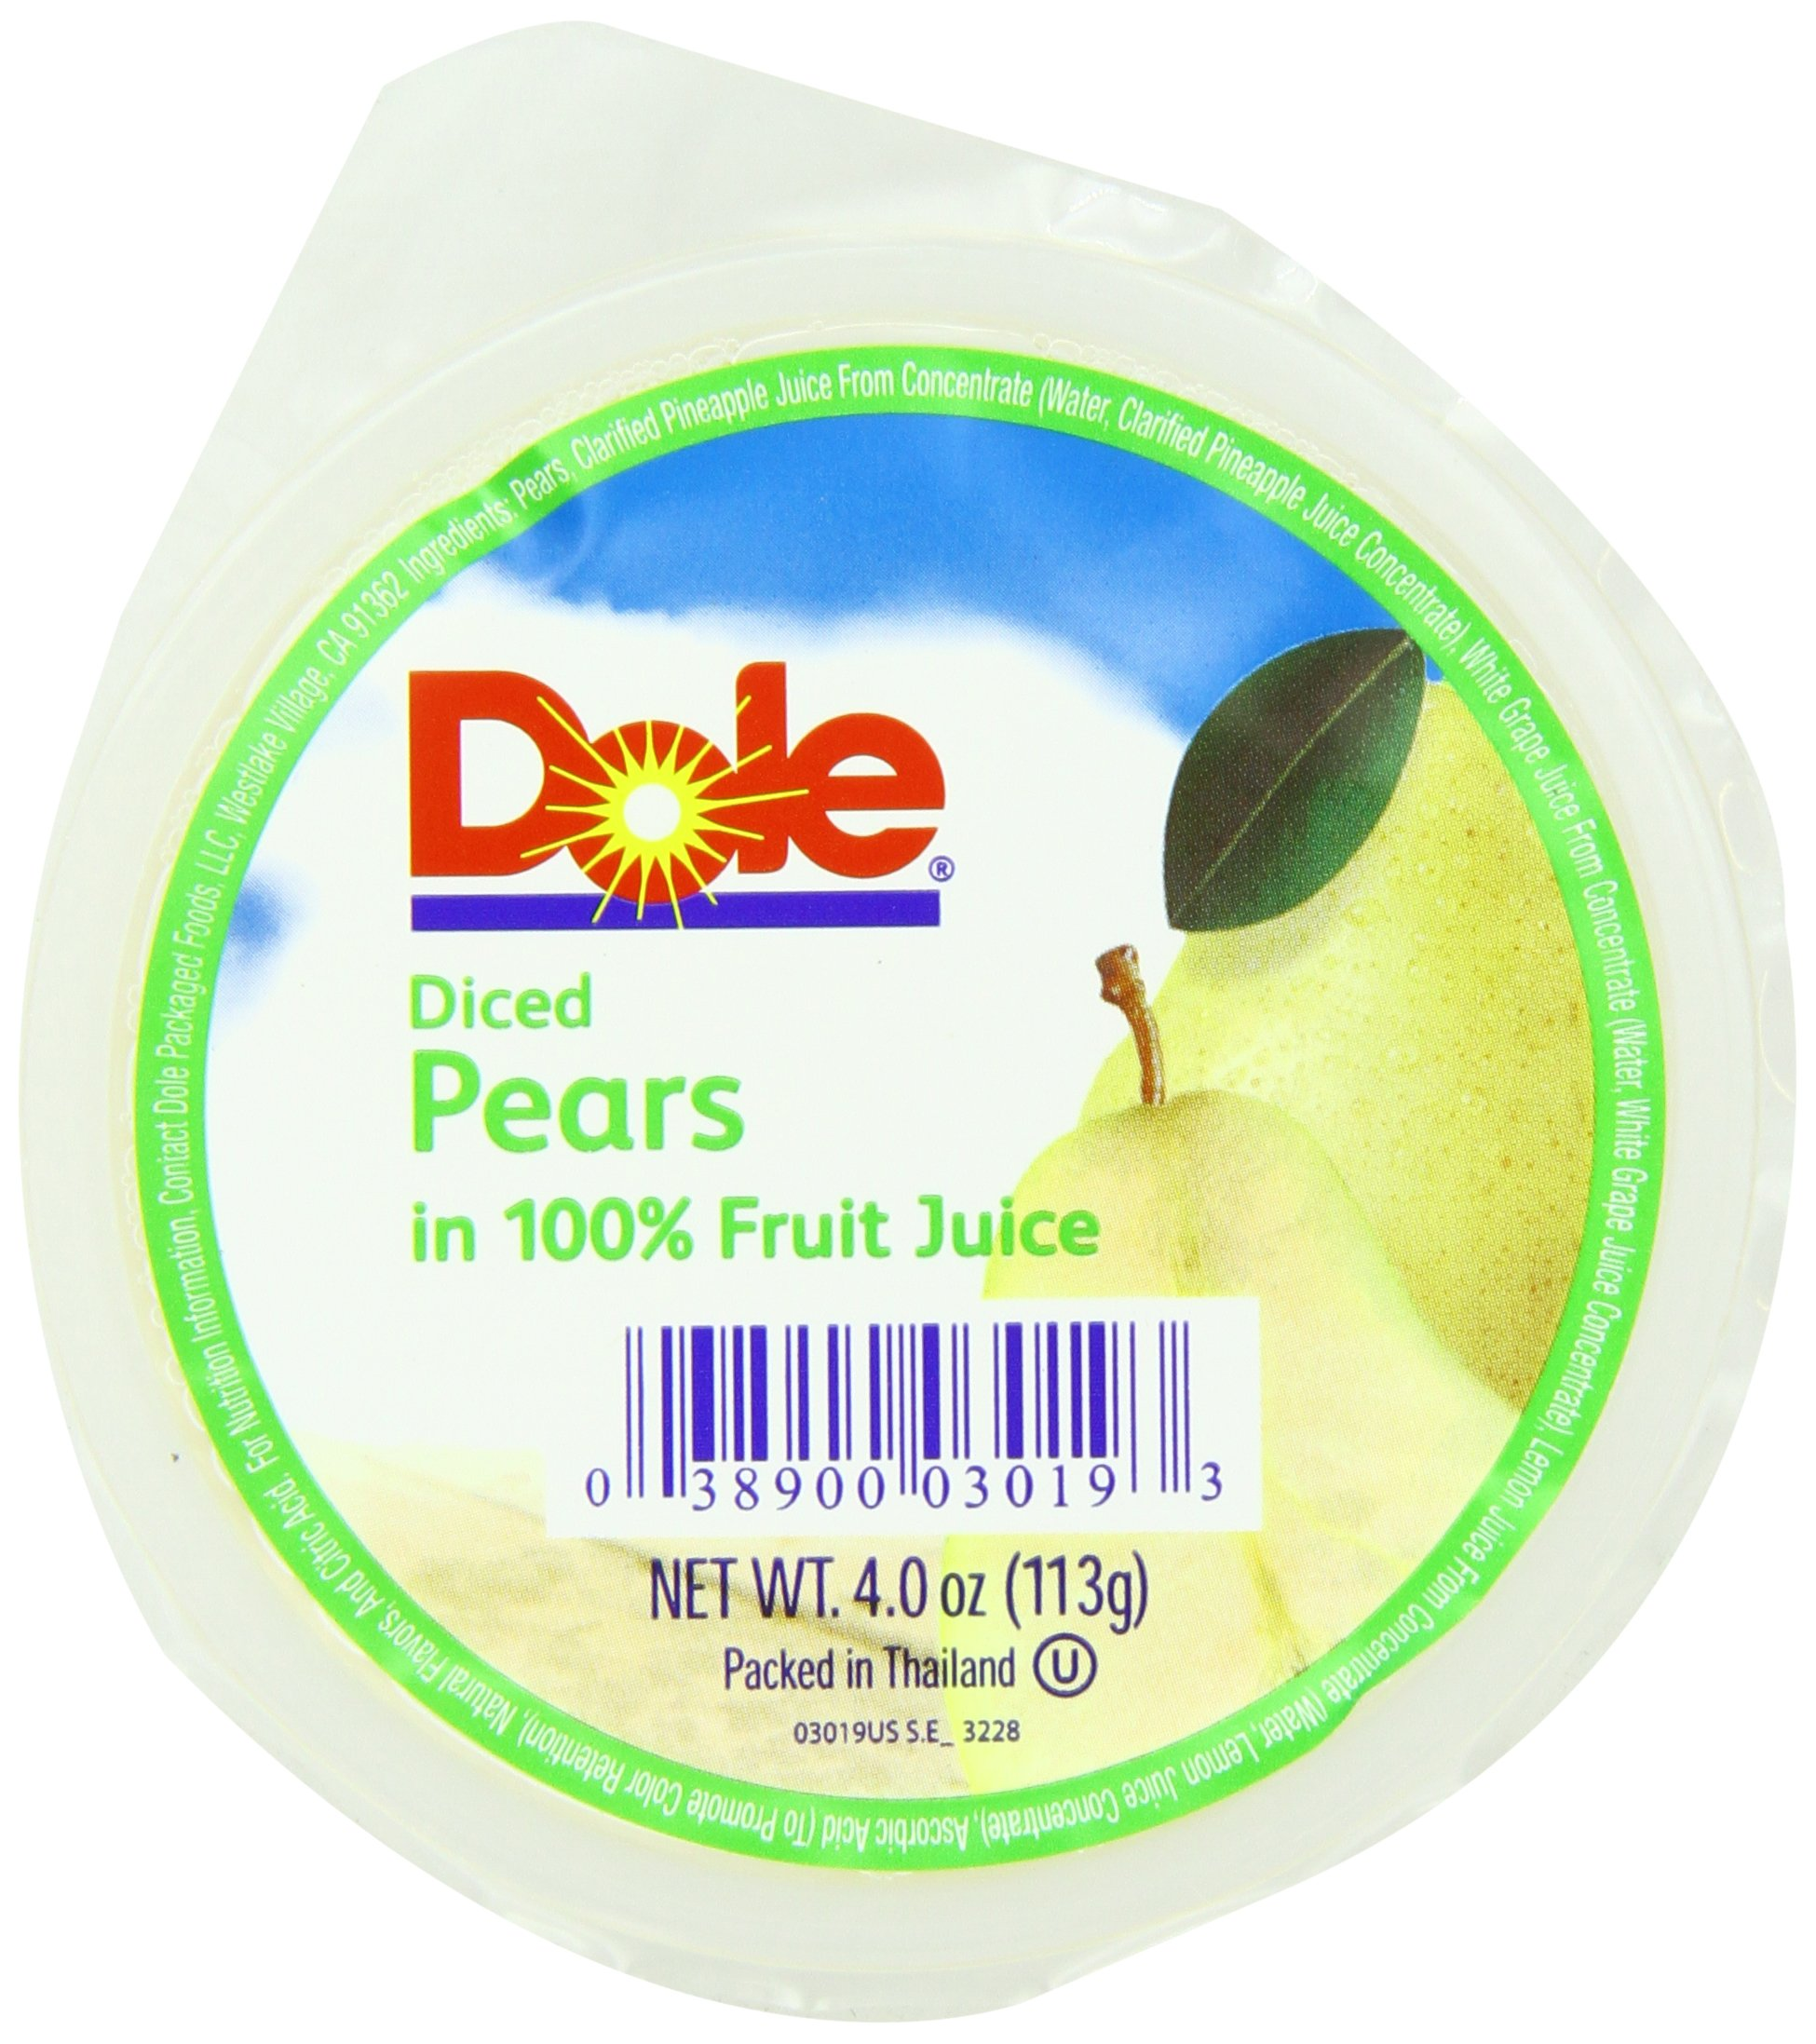 Dole Diced Pears, 4-Ounce Cups (Pack of 36) by Dole